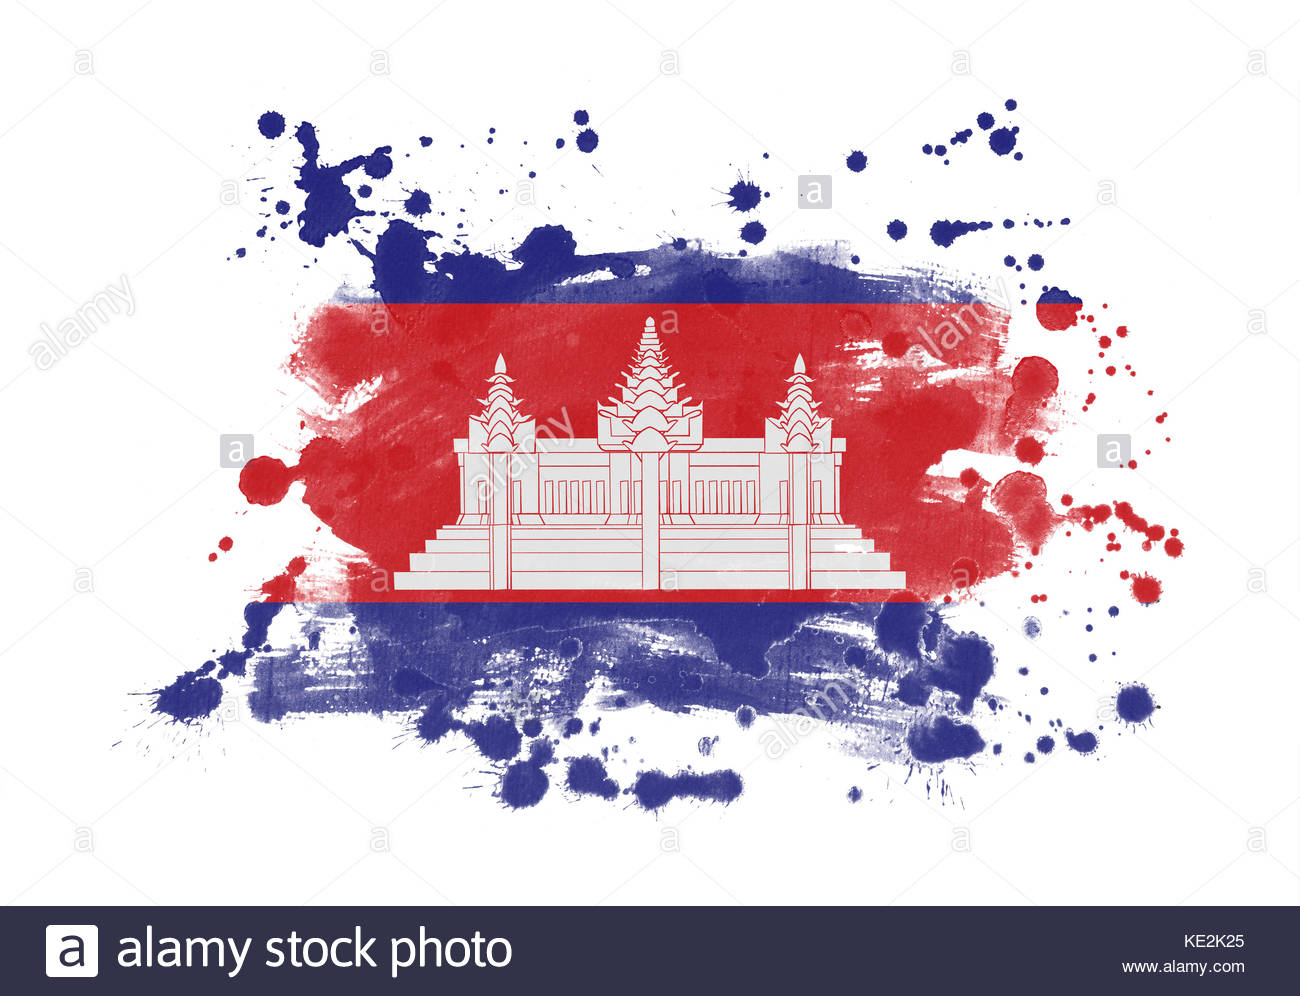 Cambodia flag grunge painted background Stock Photo 163557357   Alamy 1300x996